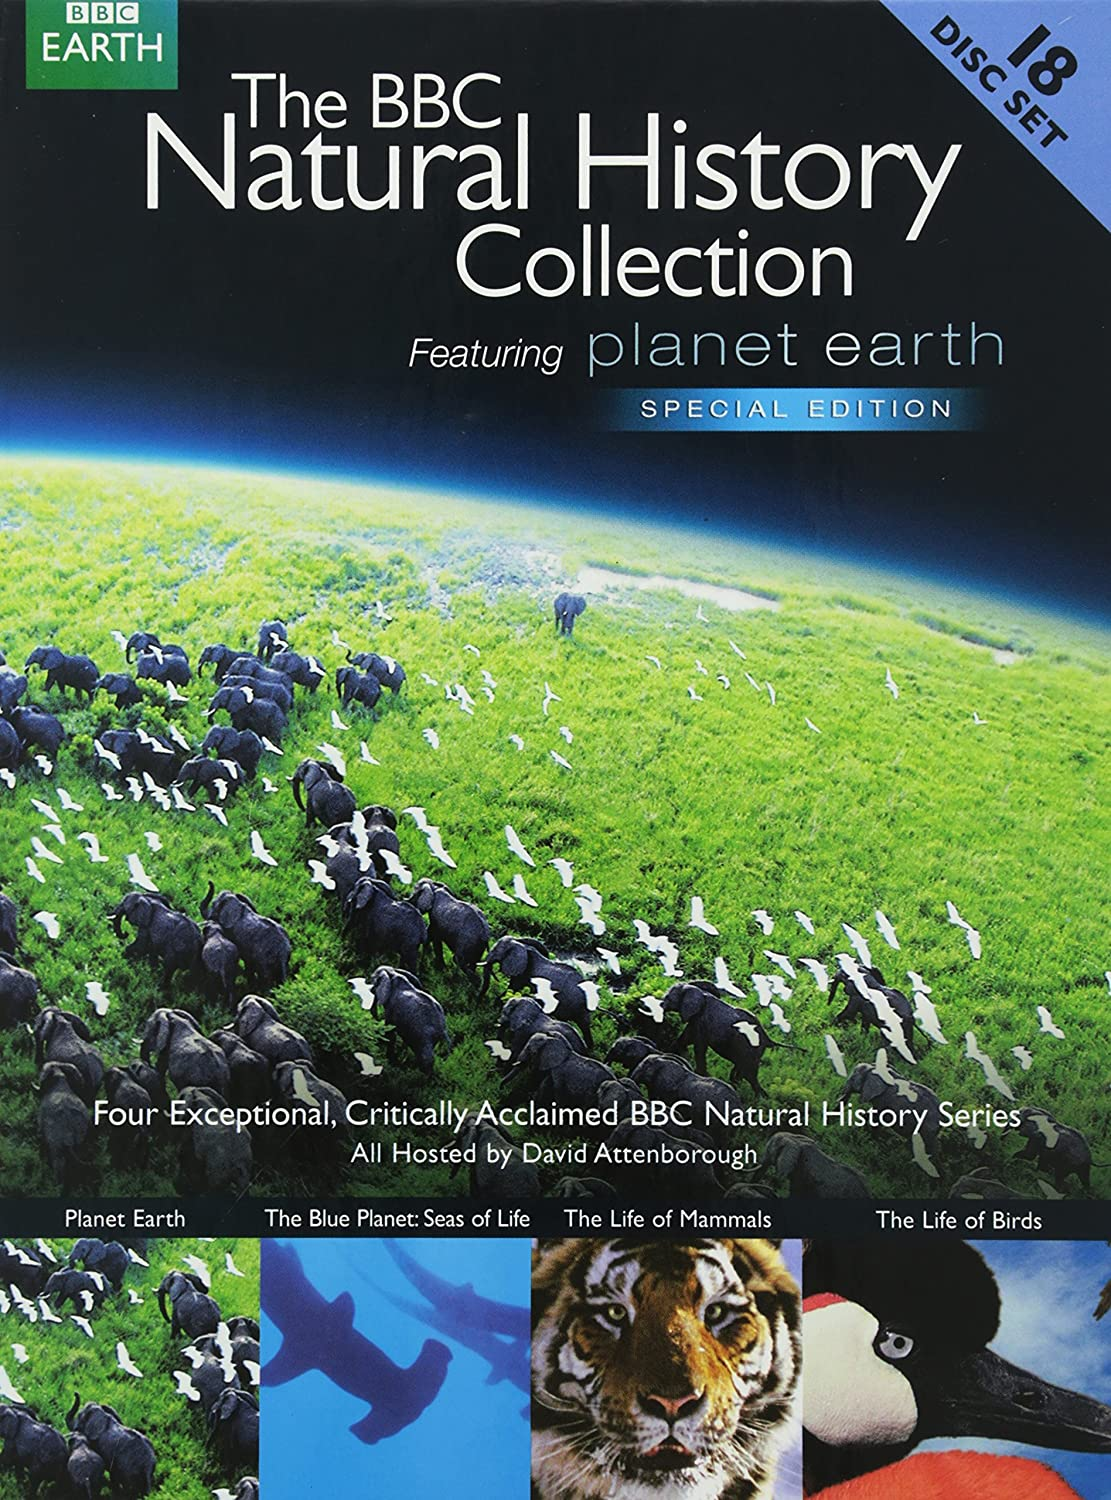 Amazon.com: BBC Natural History Collection (Planet Earth: Special Edition / Blue Planet: Seas of Life: Special Edition / The Life of Mammals / The Life of ...